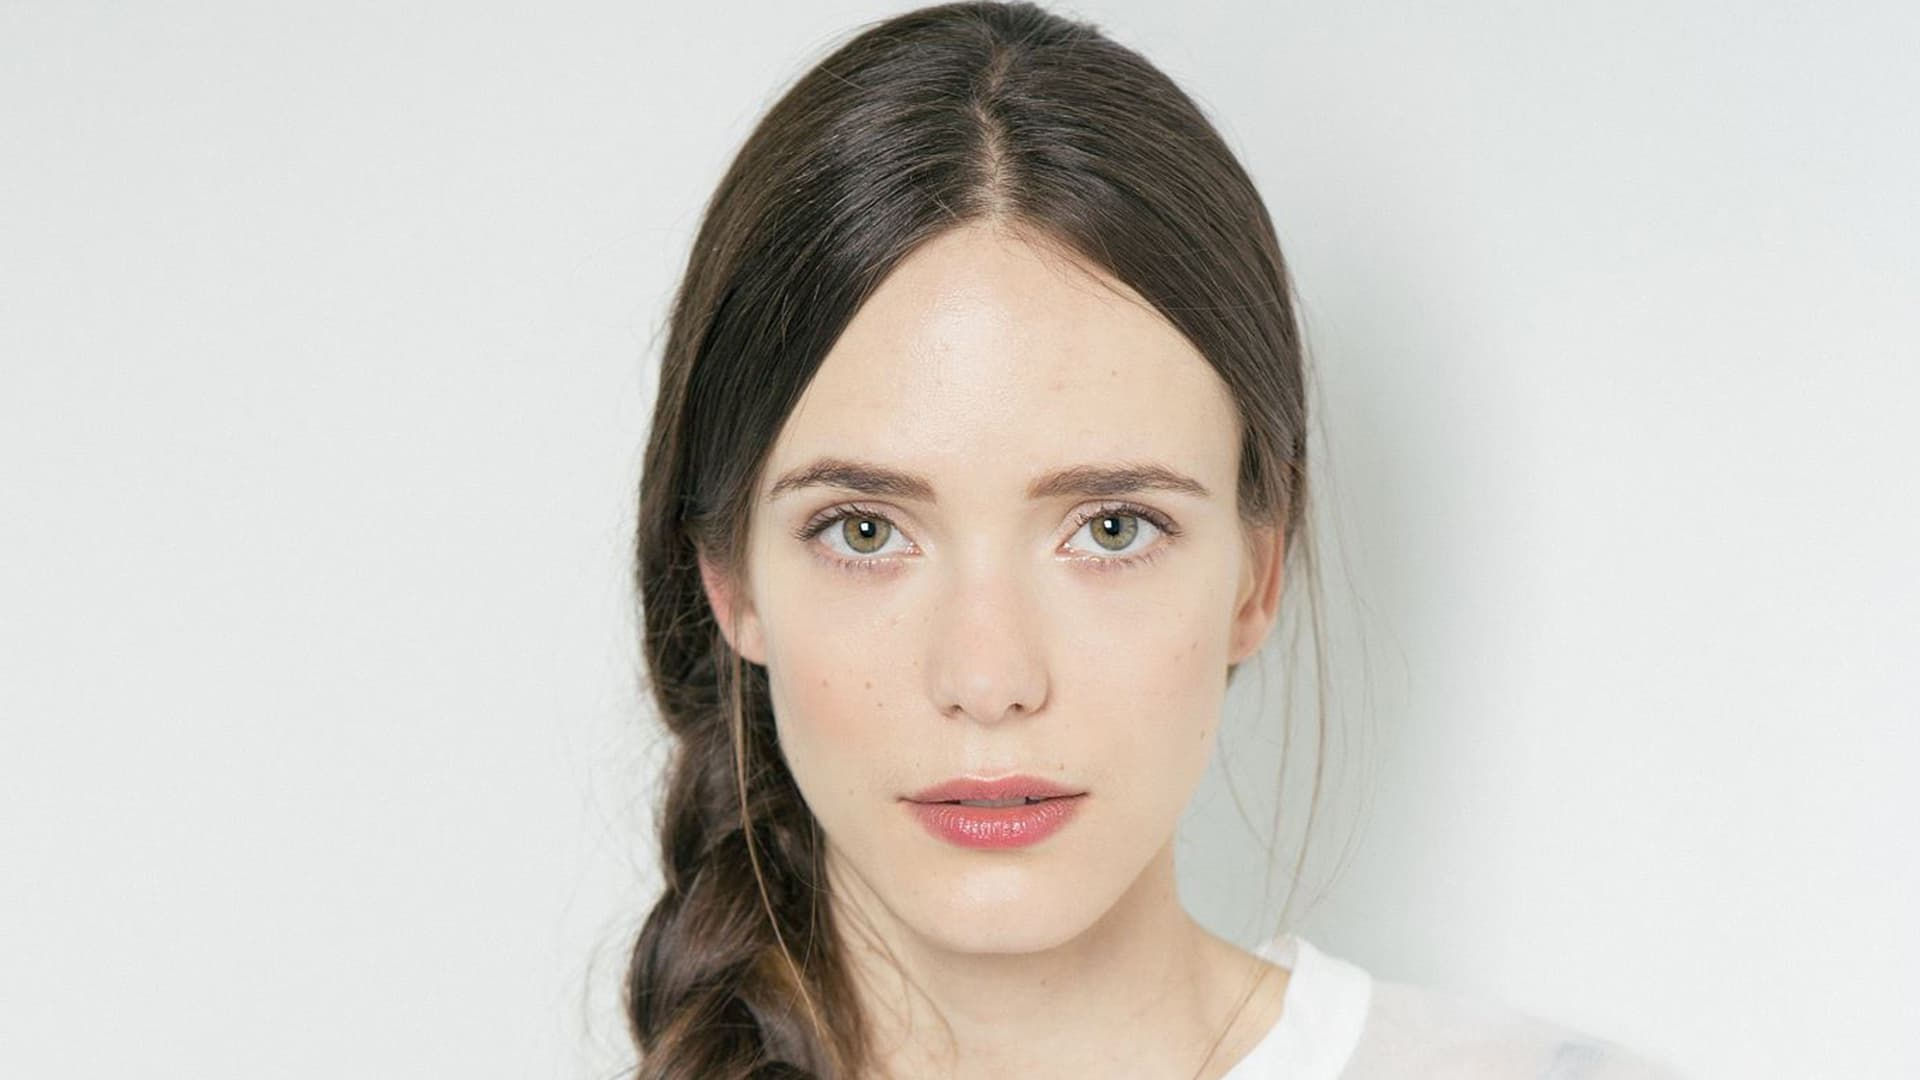 Stacy martin wallpapers hd high quality resolution download - Walpepar photos ...